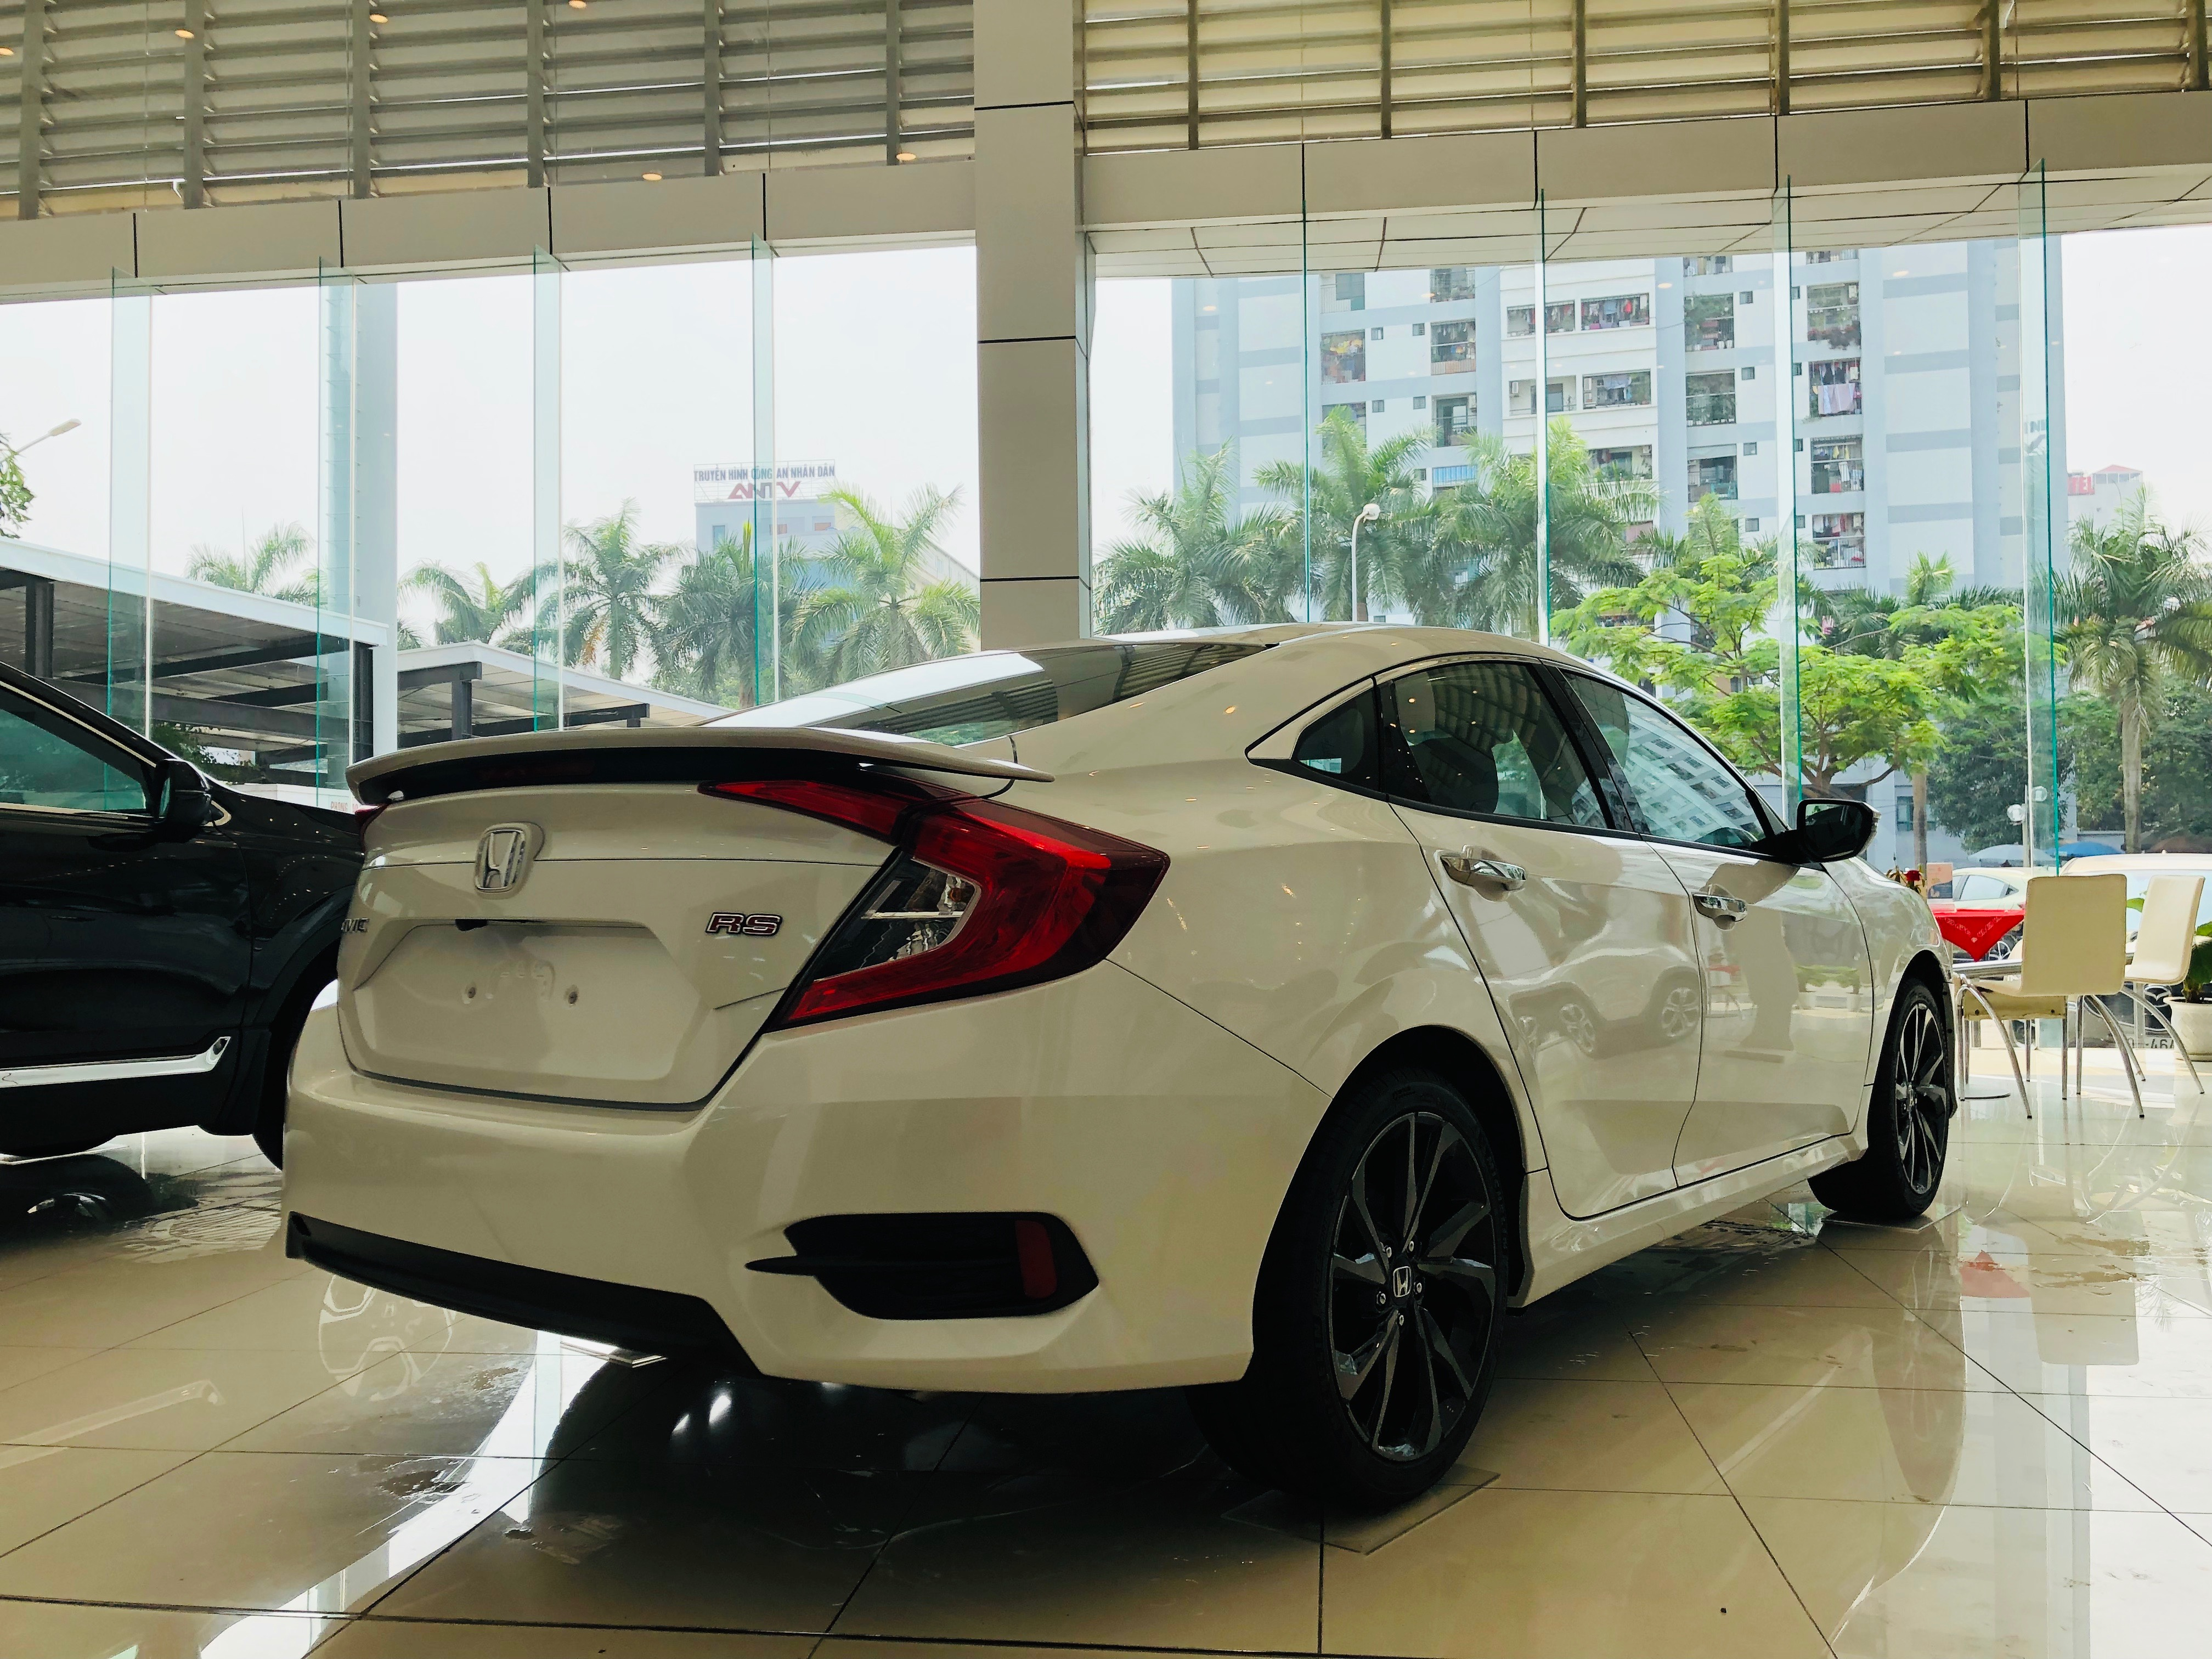 Civic-rs-duoi-xe